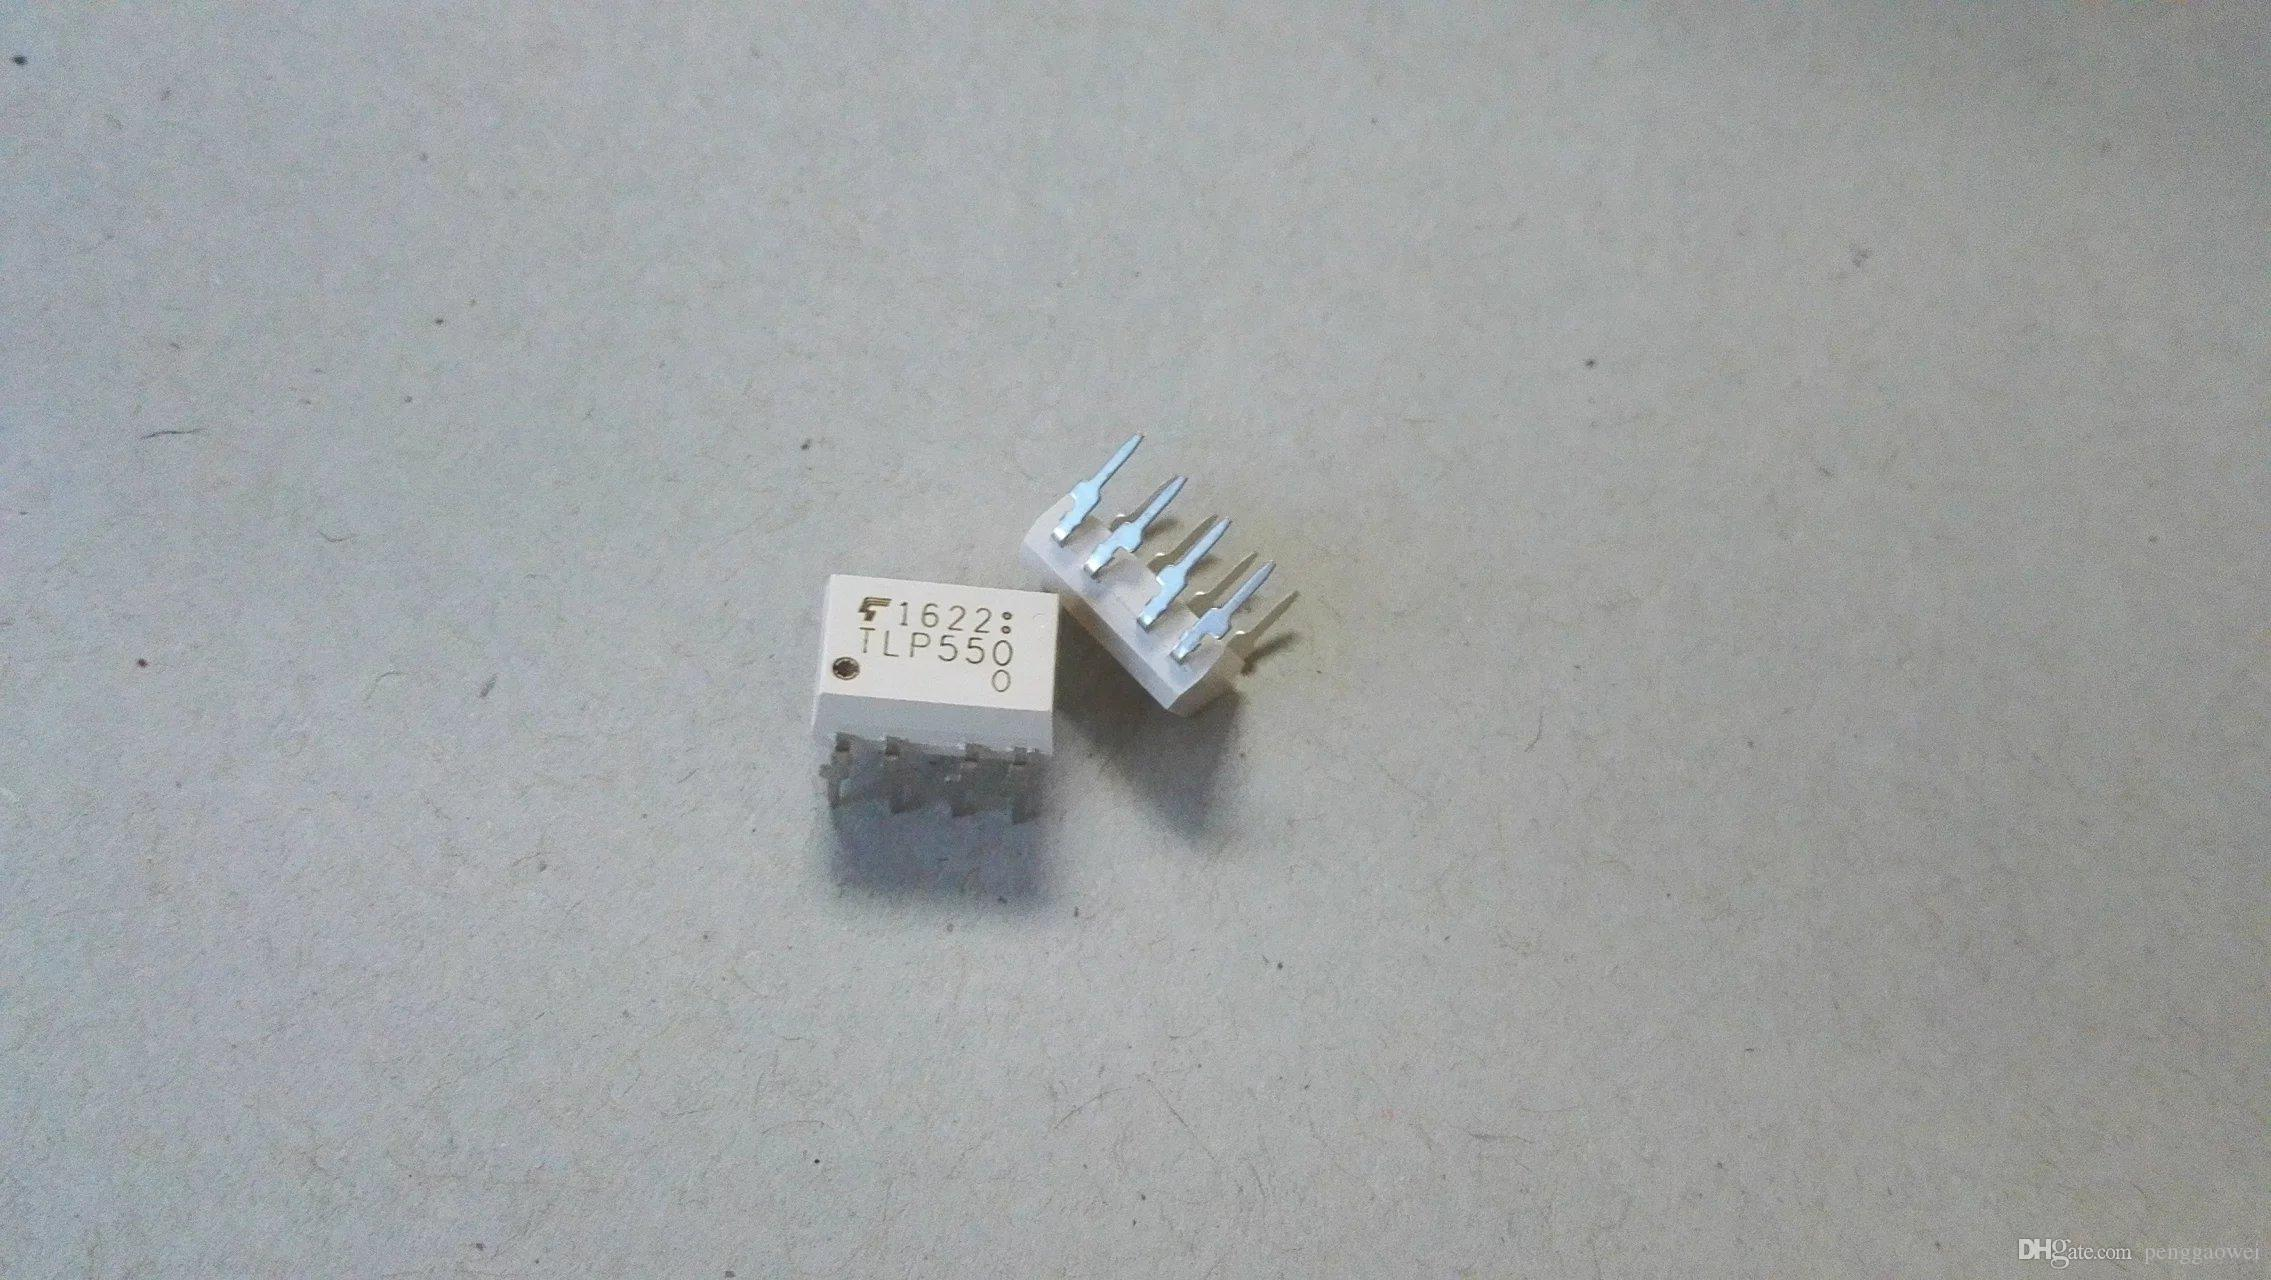 100 Original New Stock Of Tlp550 Dip Sop Isolator Optocoupler Ic Electronic Components Integrated Circuitsicsicchina Mainland Online With 229 Piece On Penggaoweis Store